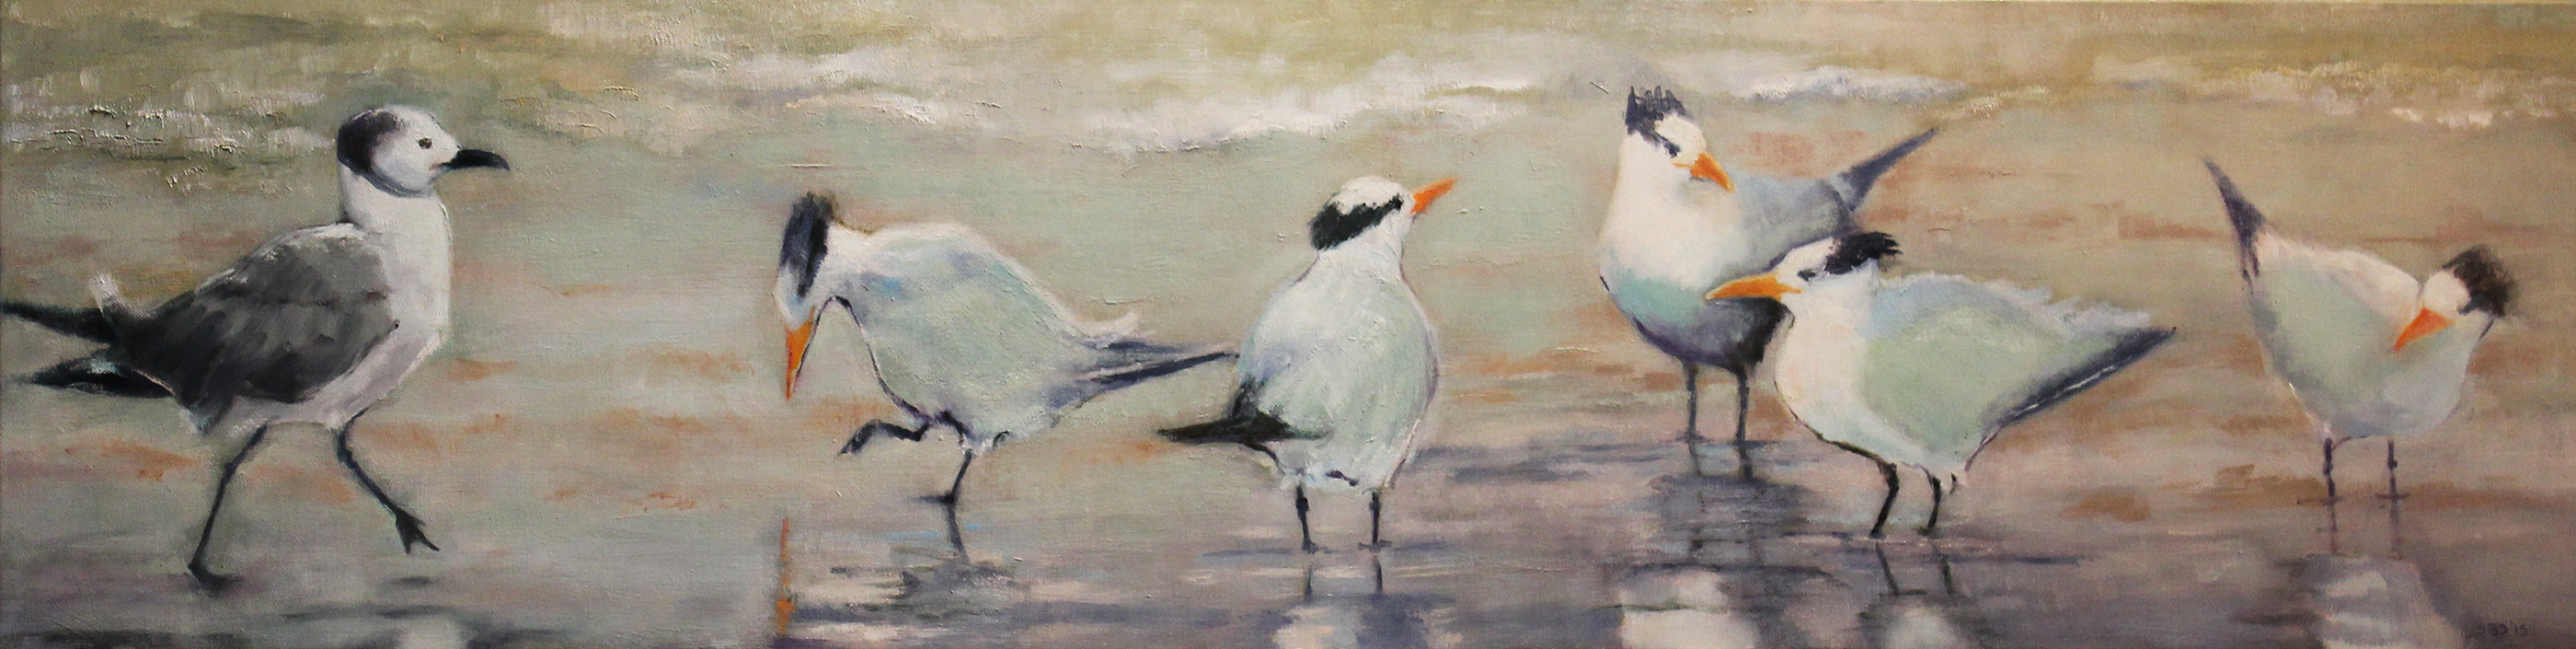 Terns and one Seagull - the interloper described on my blog